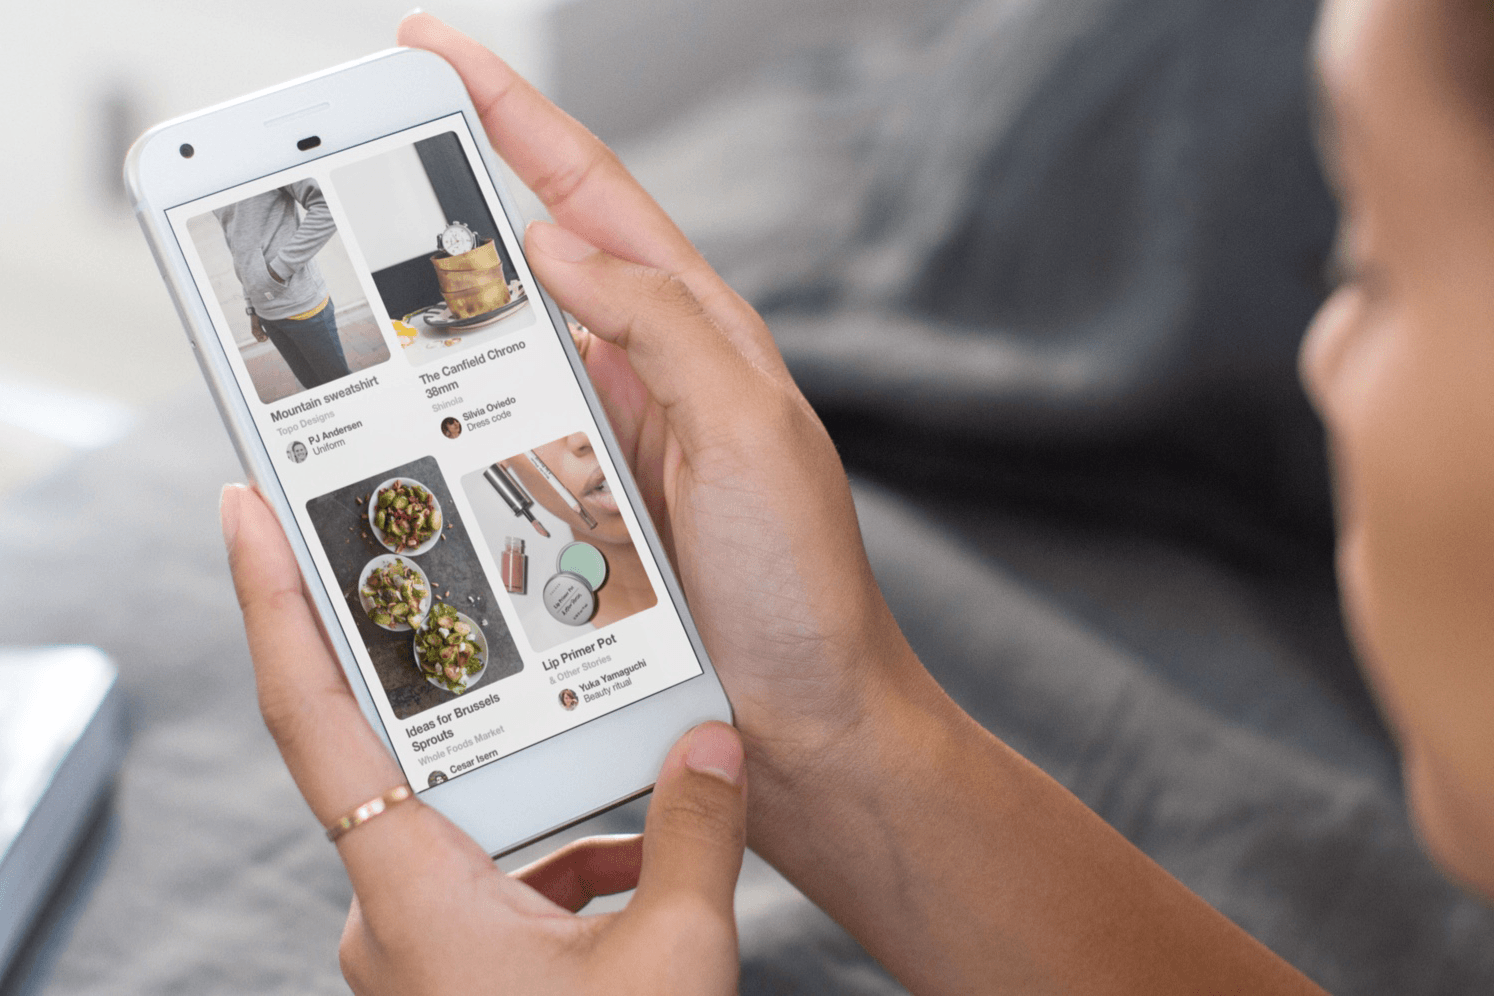 Find Out About The Most Popular Searches On Pinterest